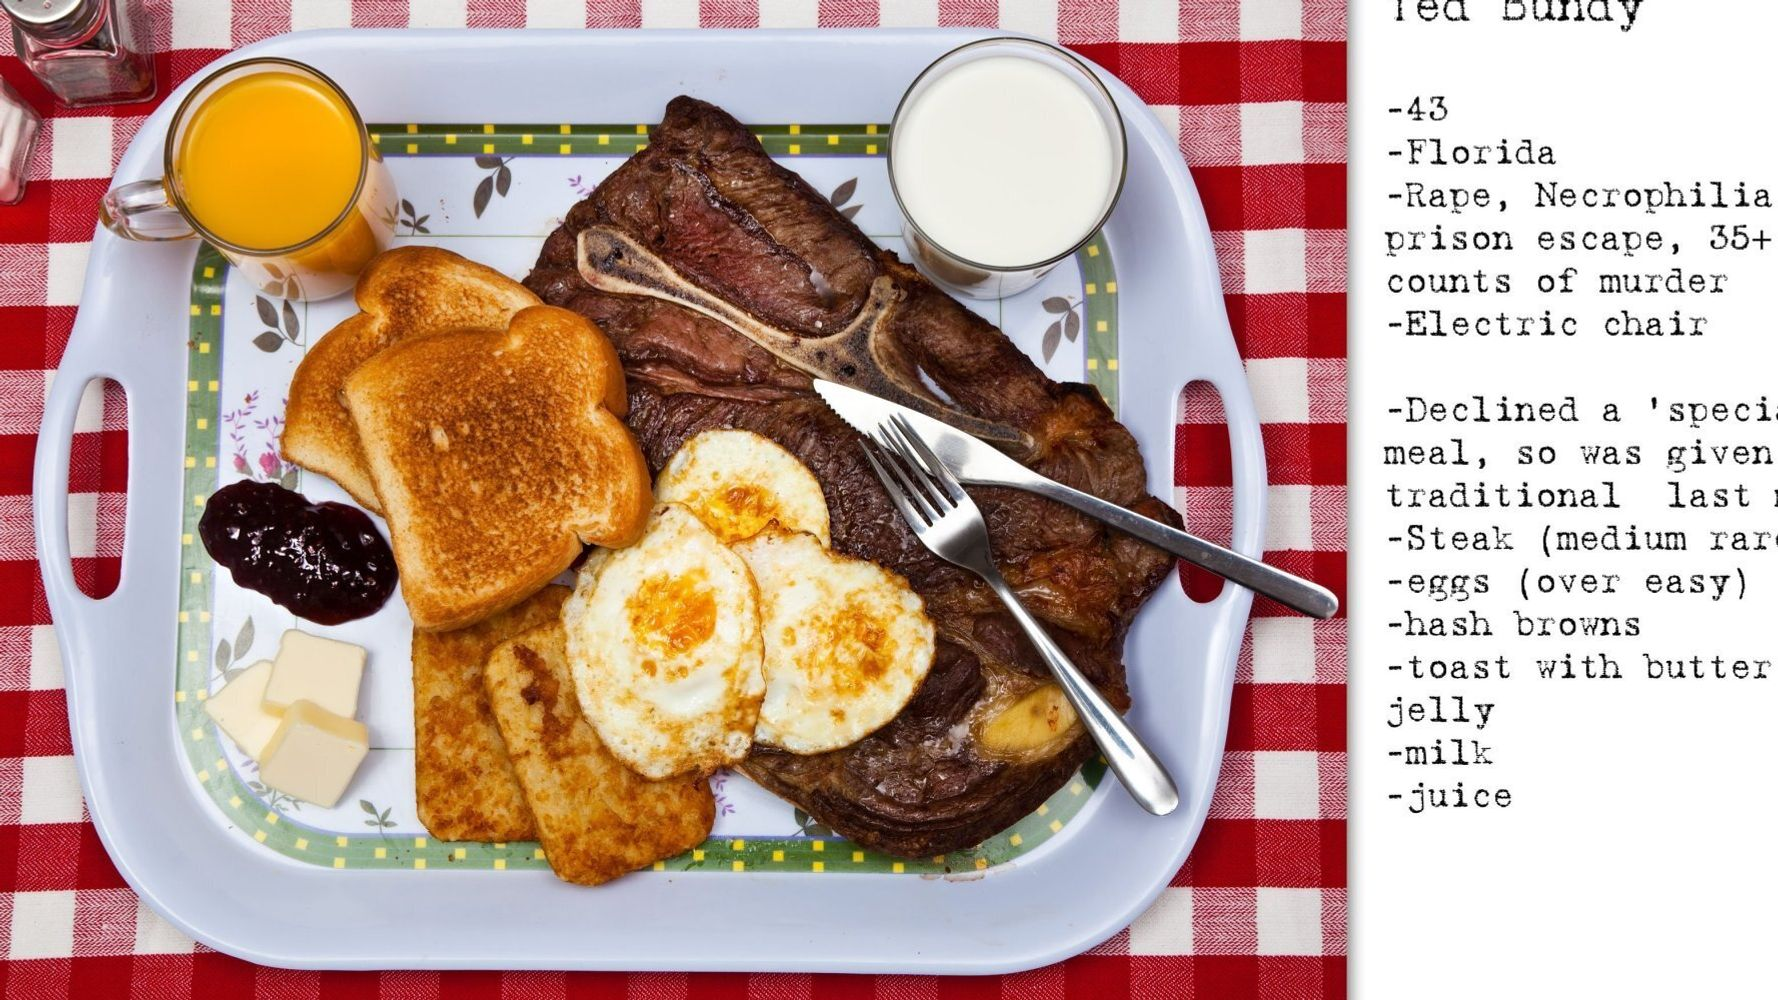 No Seconds: The Final Meals Of Death Row Prisoners Including